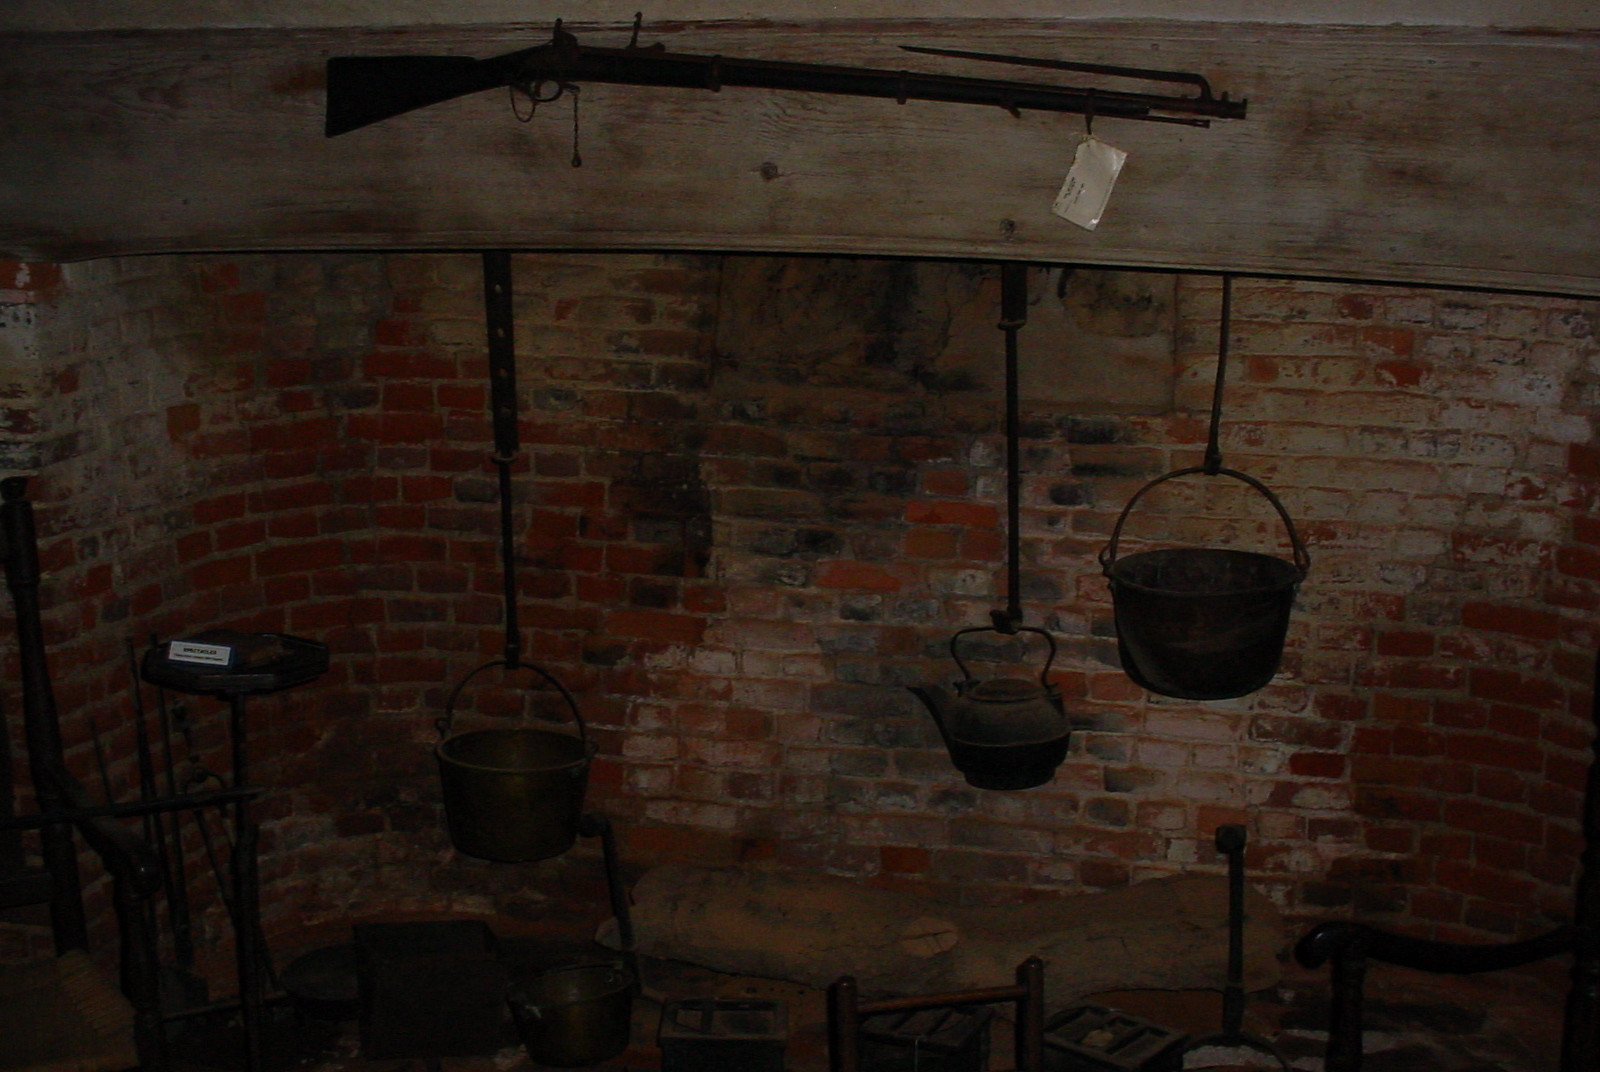 Cooking utensils in the Old House